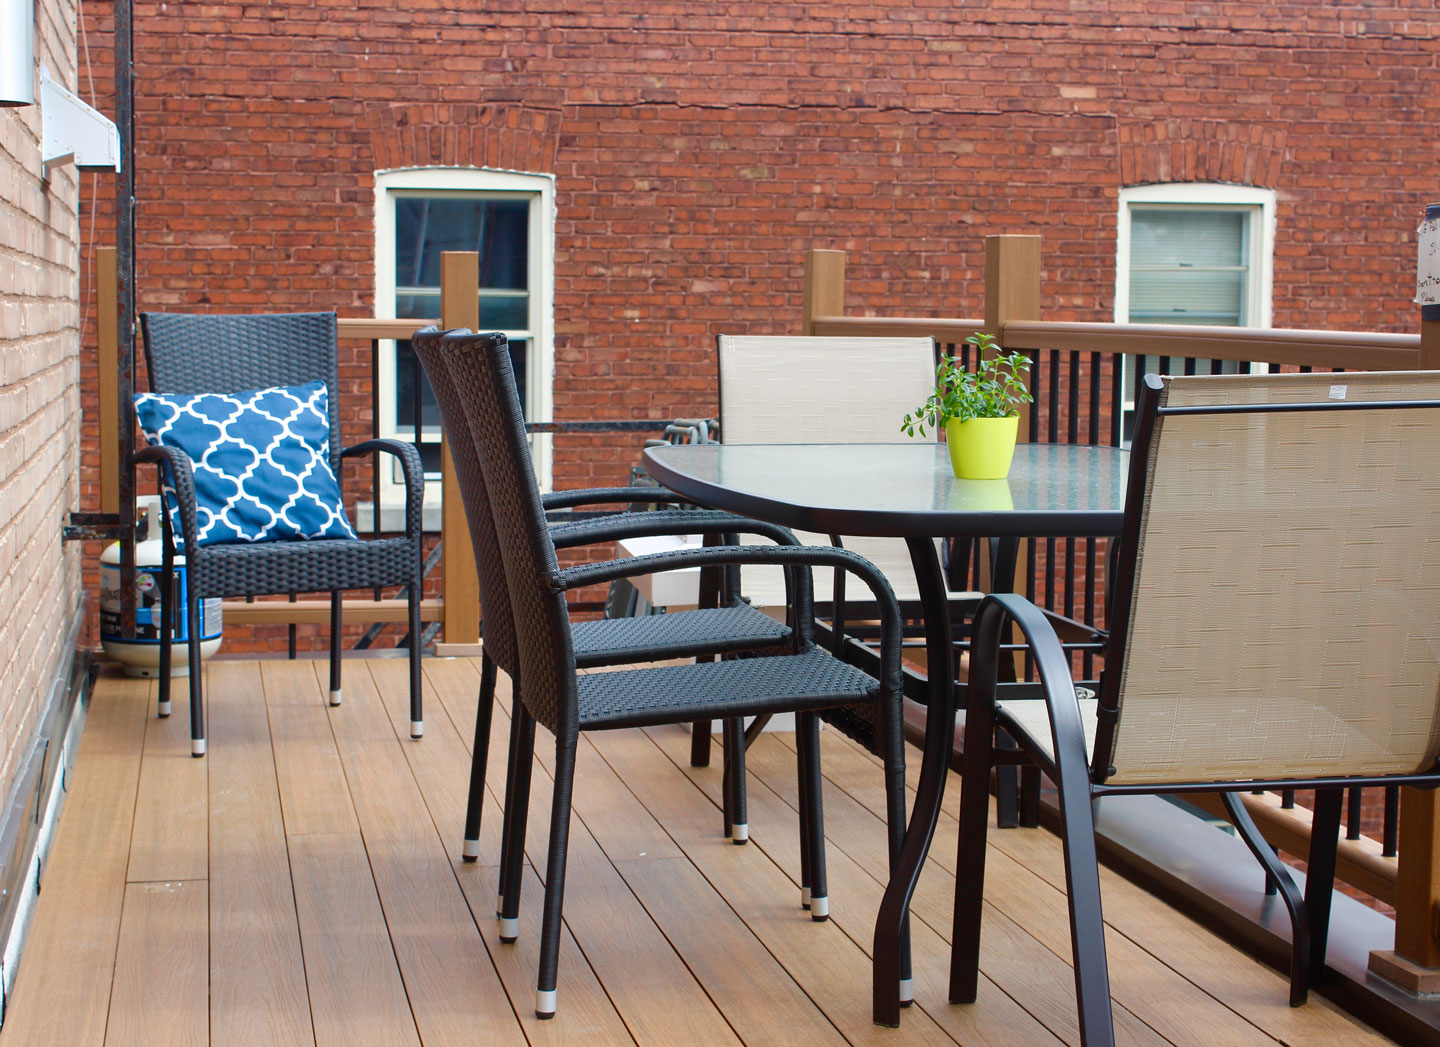 Scandinavian kiss: sunny patio with furniture and BBQ with gas provided